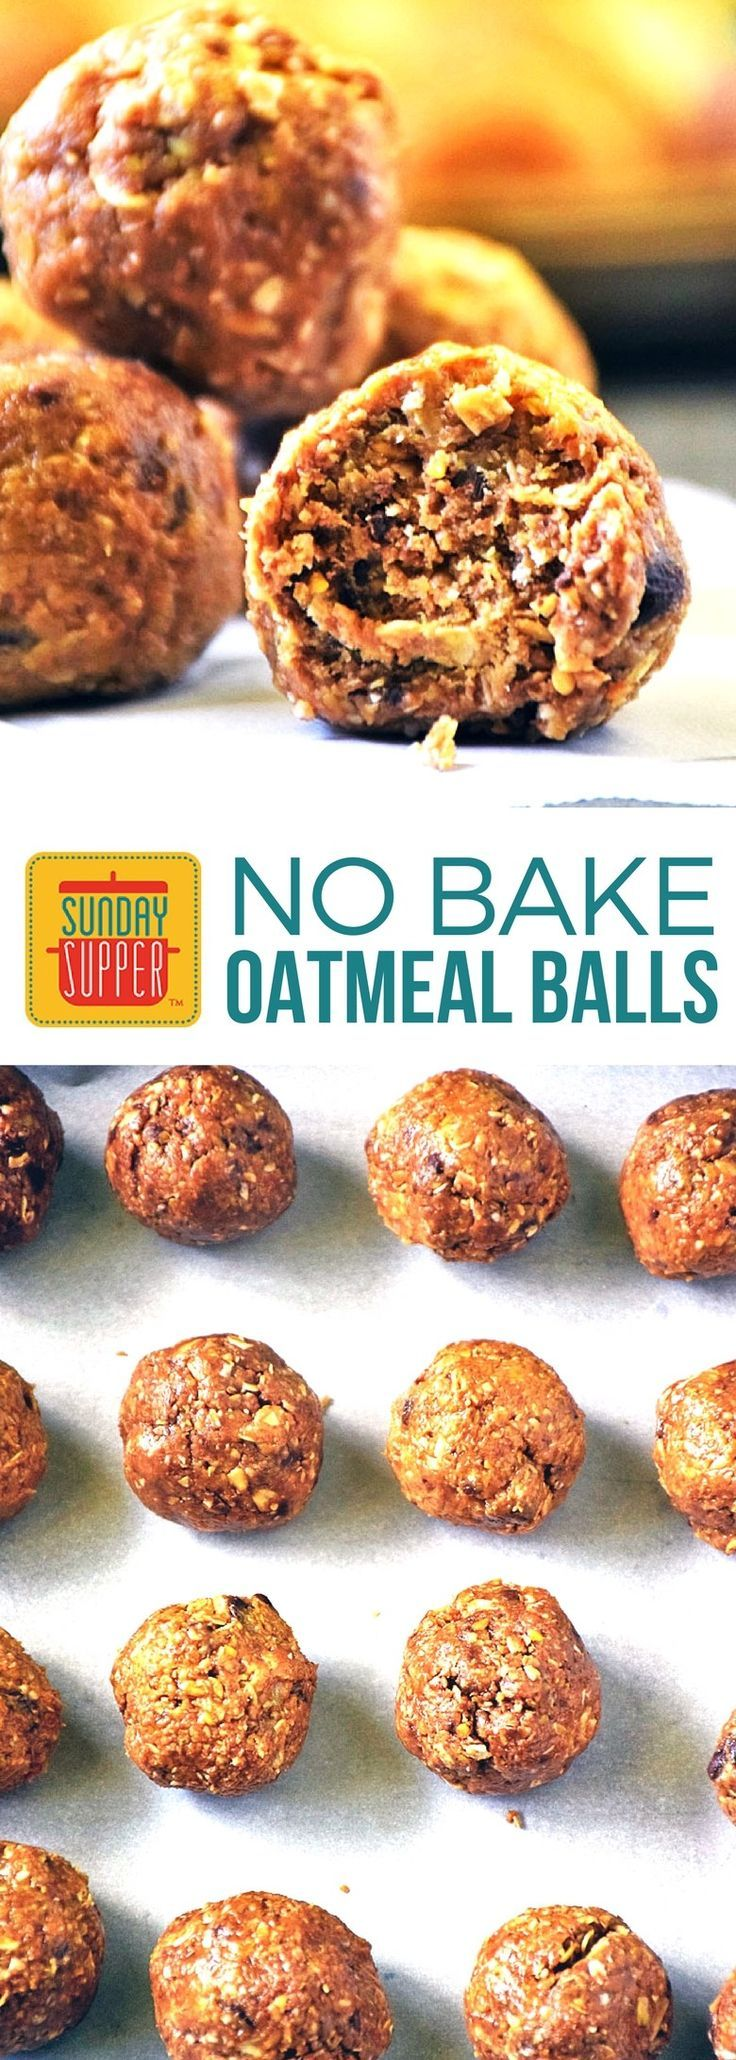 Little balls of heaven! No Bake Oatmeal Balls loaded with protein & other good-for-you stuff are one of our Best After School Snacks! Your kids will ask for these again and again never knowing how healthy they are. Full of flax seed, oats, peanut butter, honey, & a little bit of chocolate chips, these no bake oatmeal balls make the perfect anytime snack! #SundaySupper